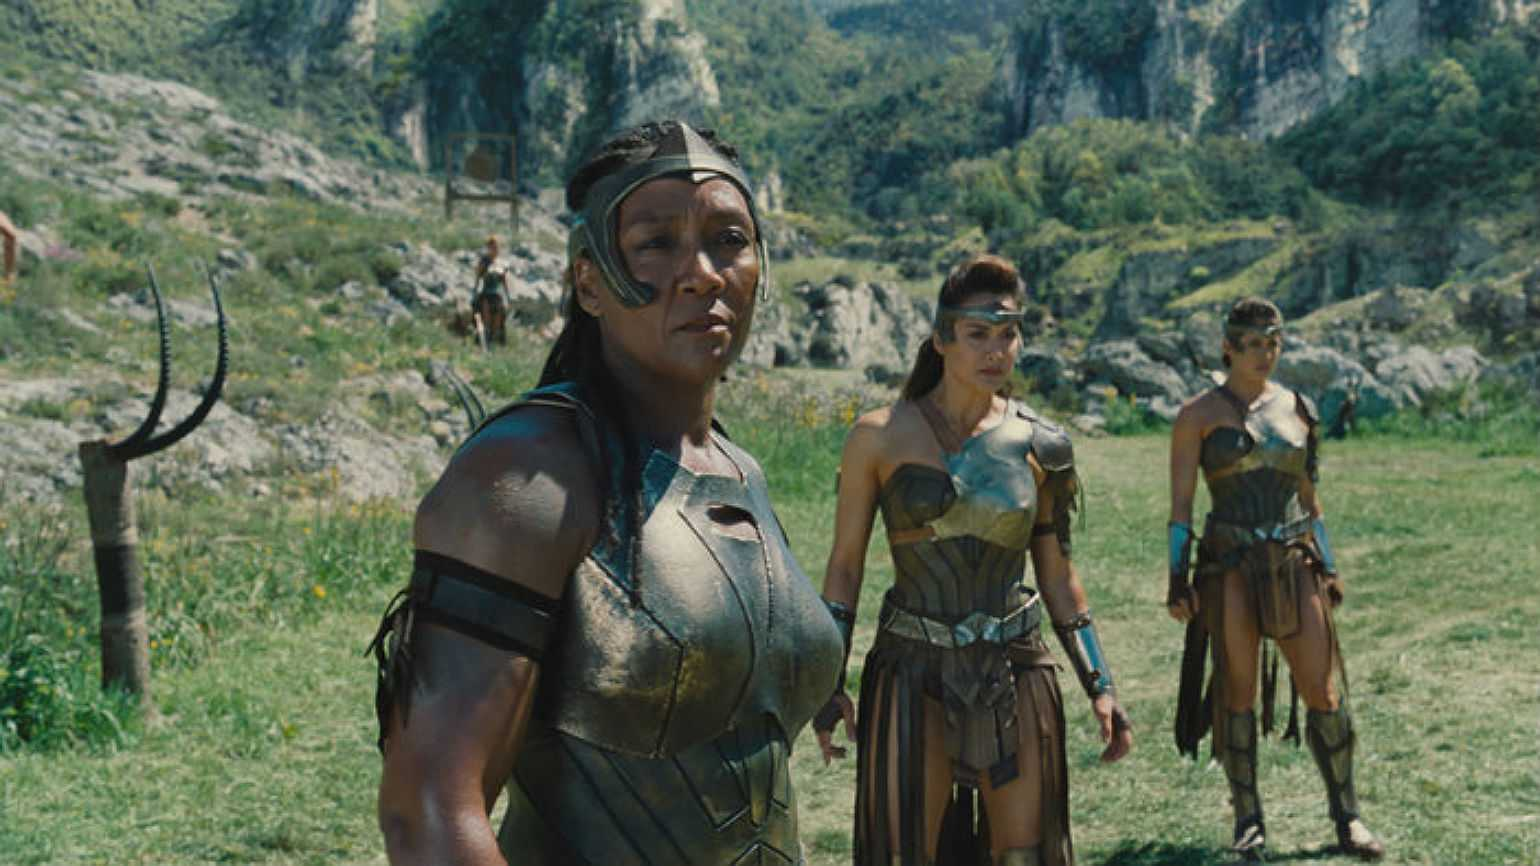 Amazons in Wonder Woman